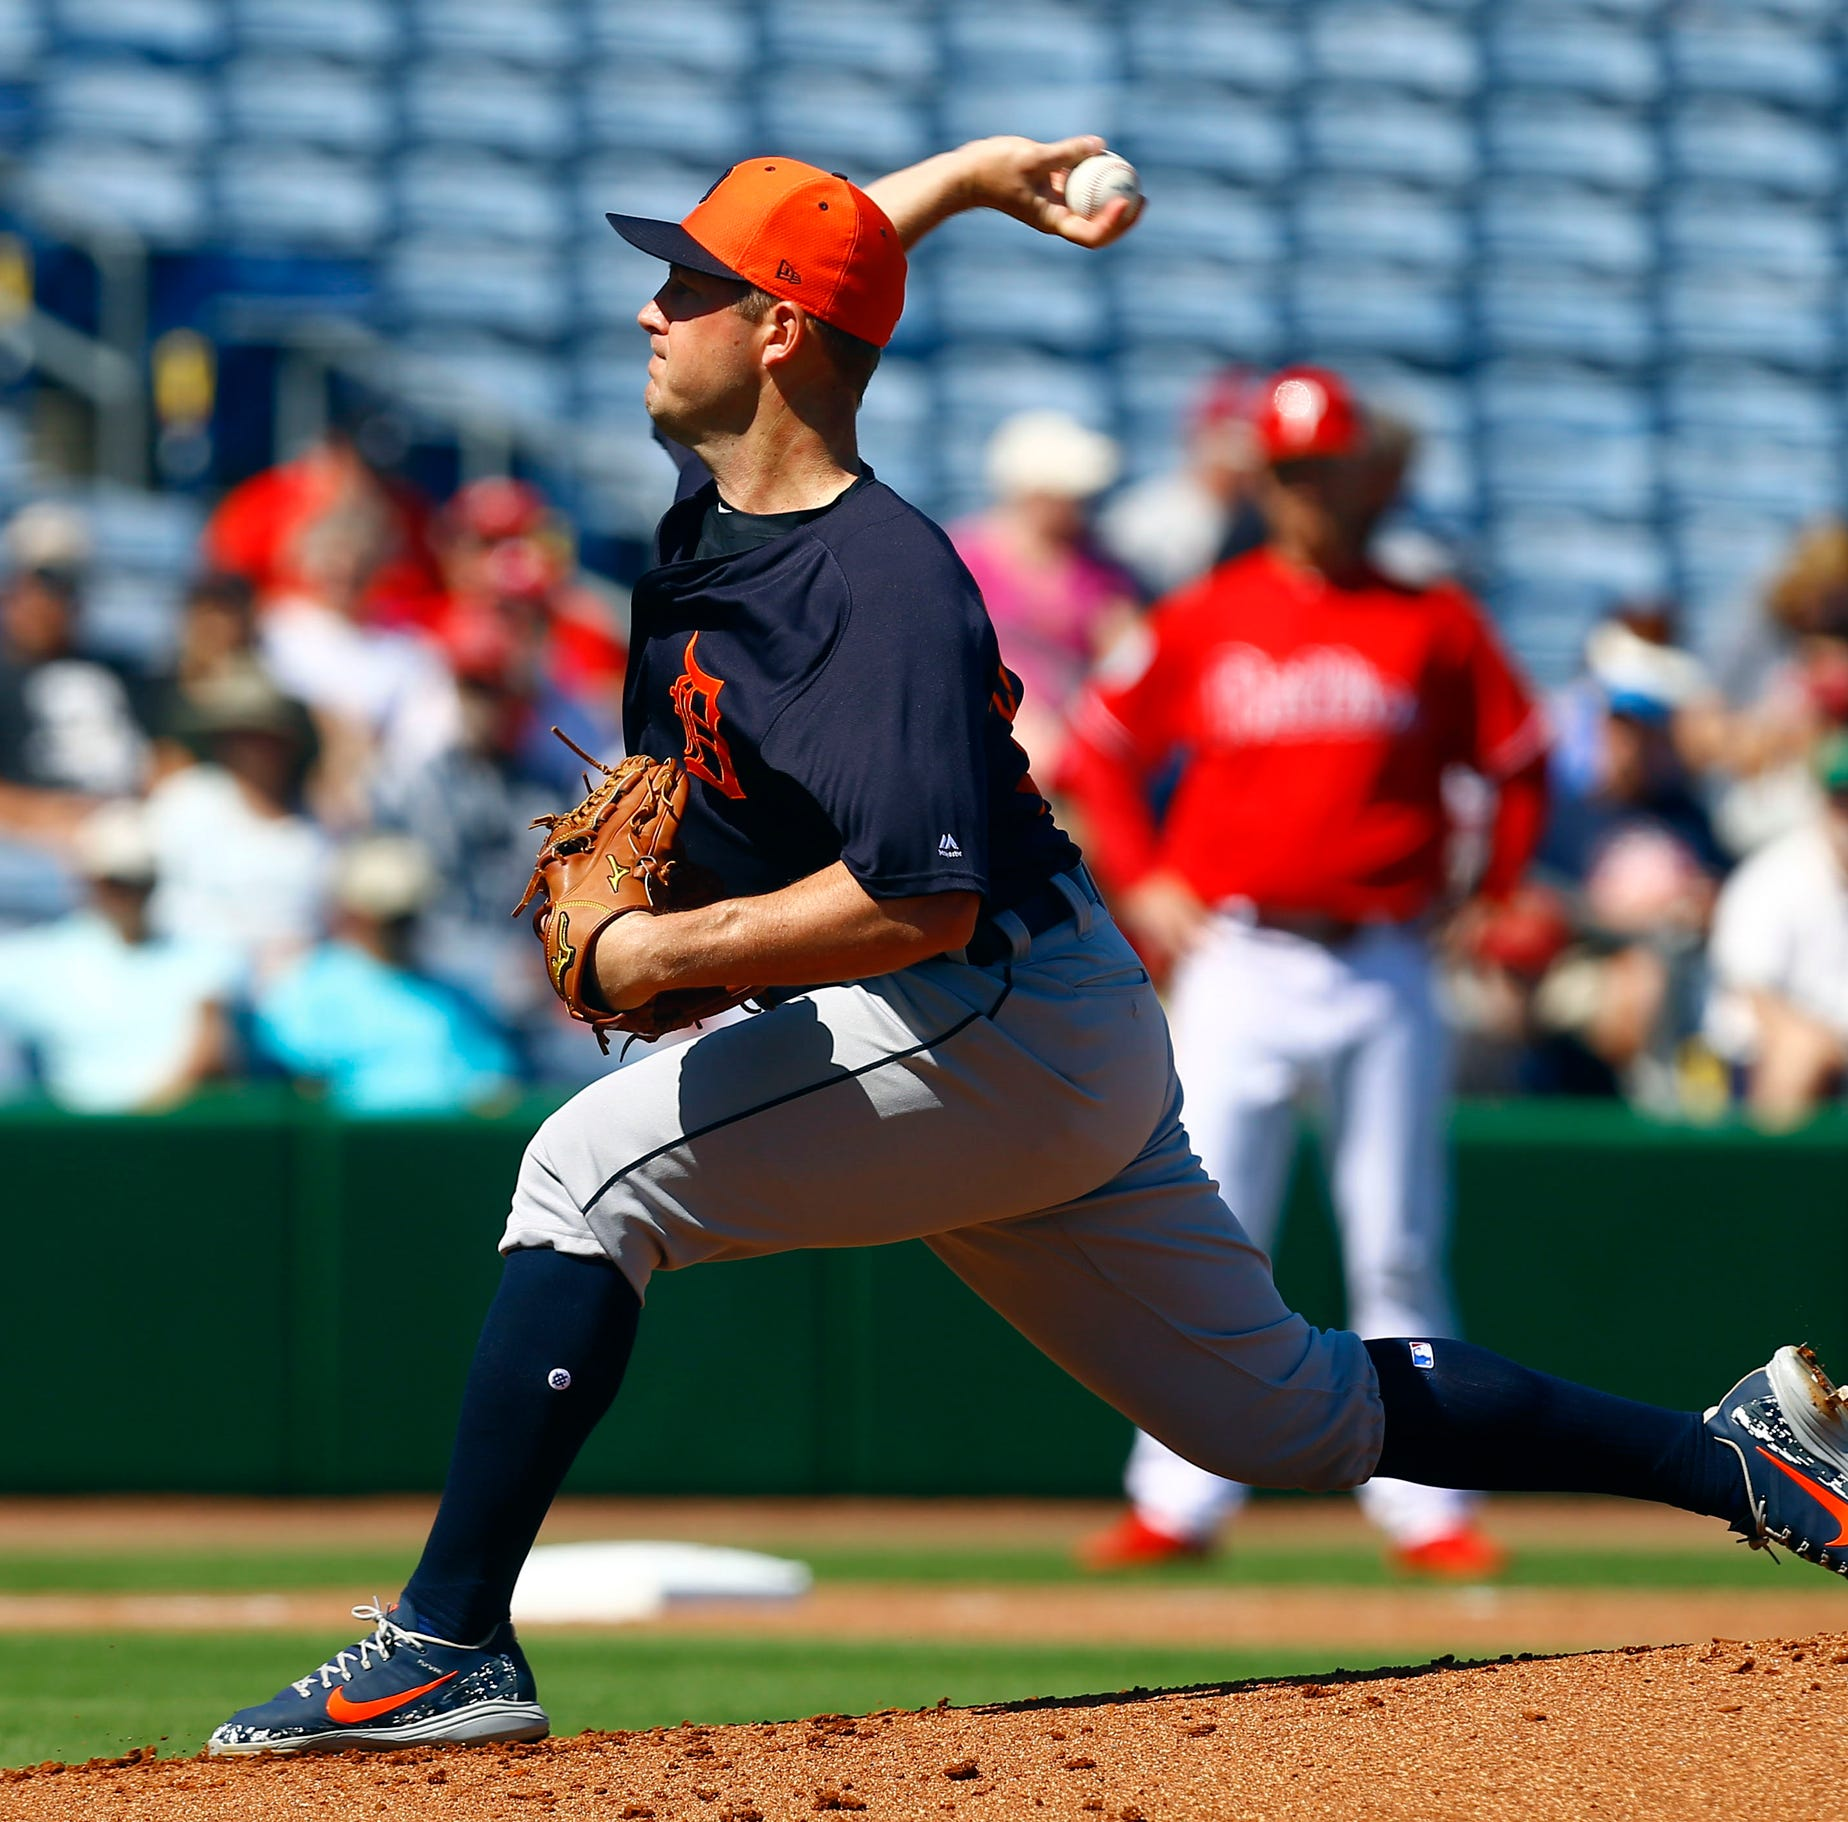 Detroit Tigers lose to Philadelphia Phillies in spring training, 3-1